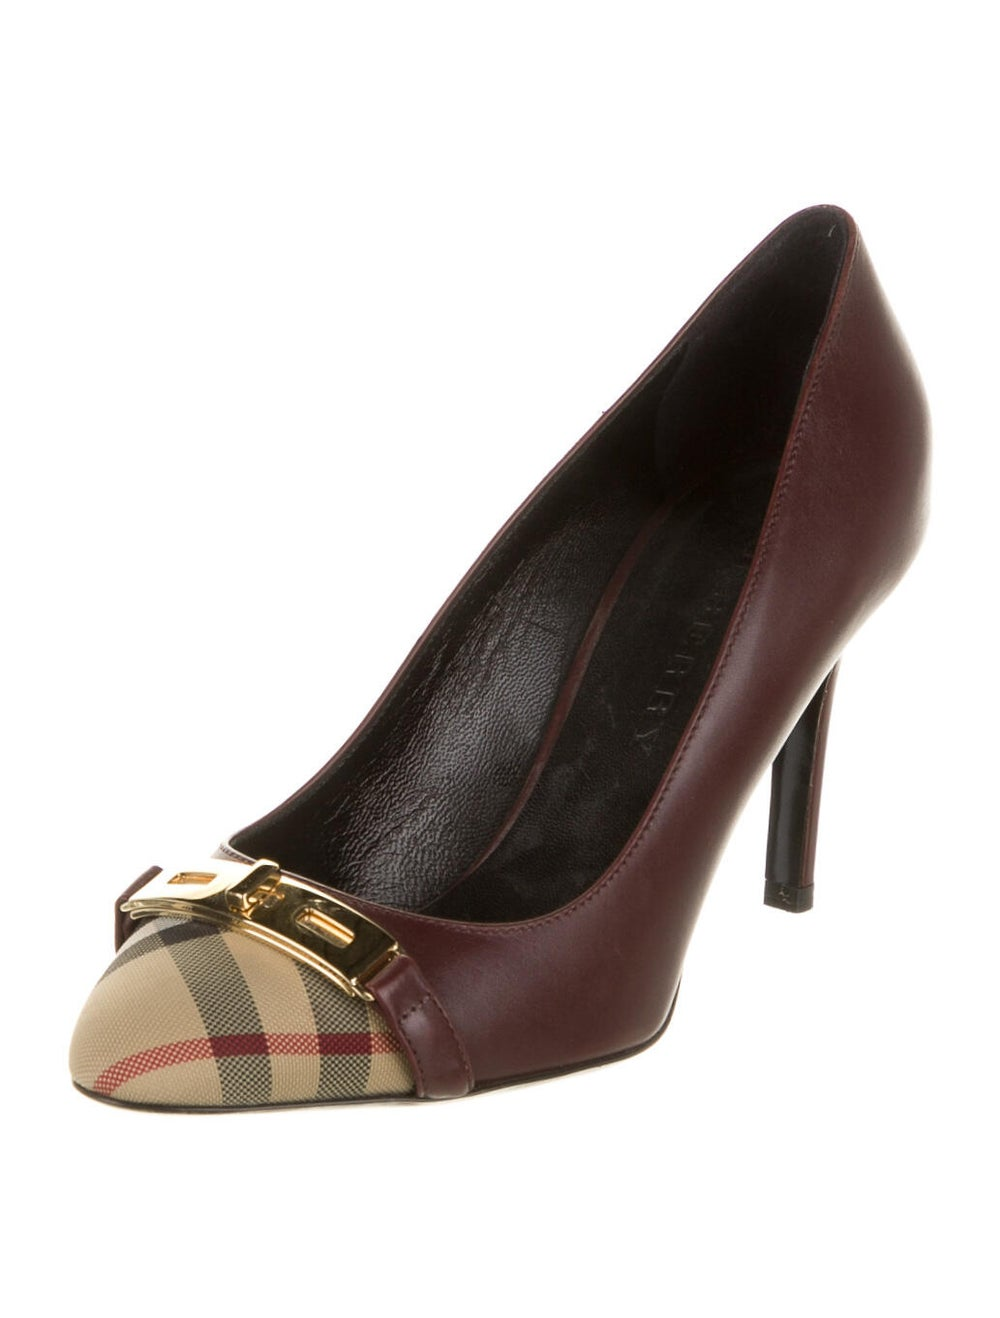 Burberry Leather Pumps - image 2